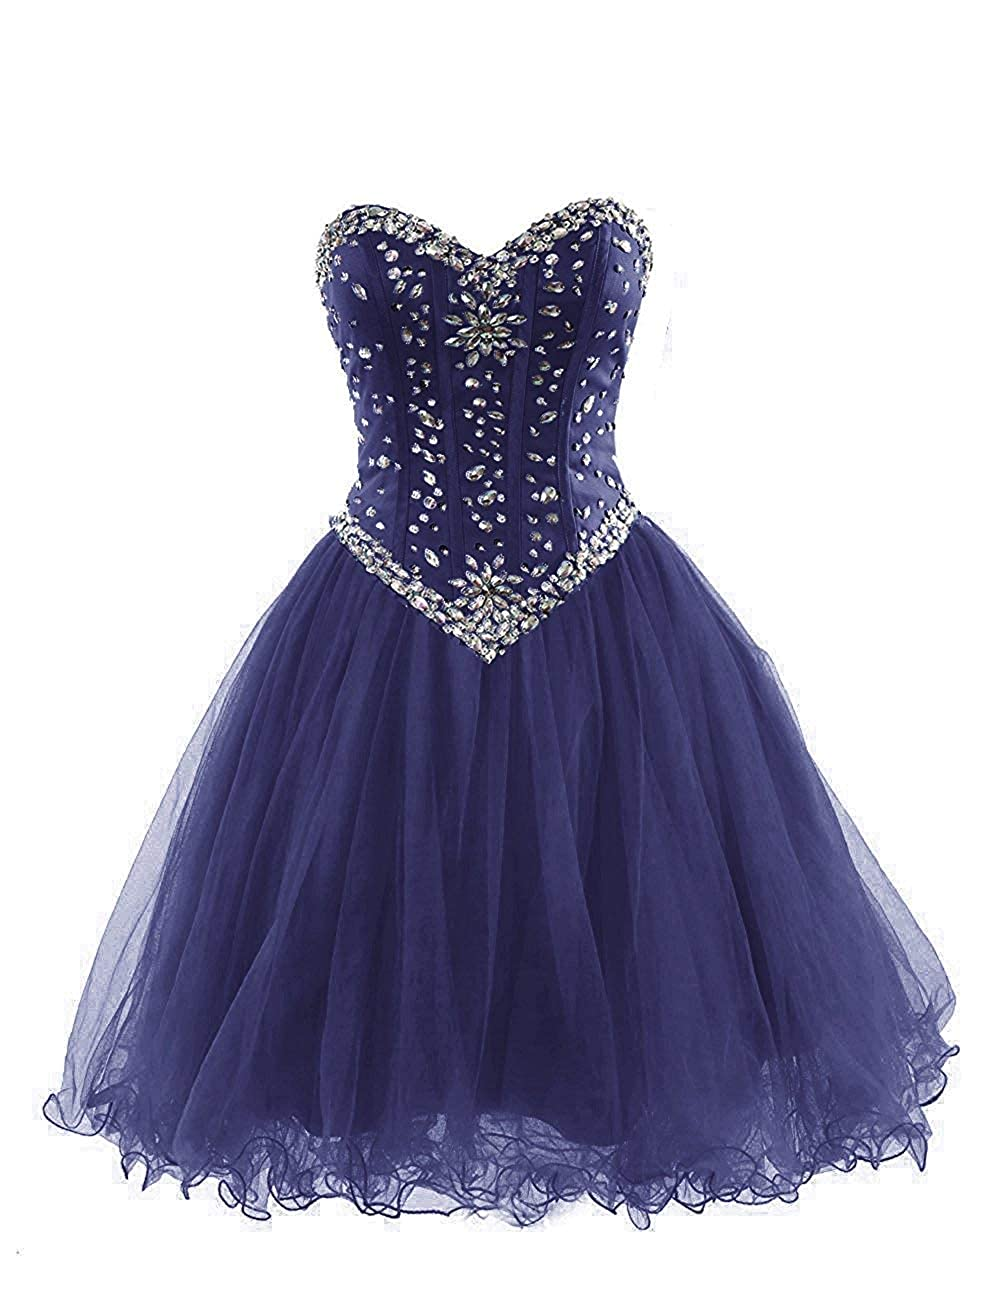 Navy bluee Short Homecoming Dresses Tulle Sweetheart Prom Bridesmaid Dress Beaded Cocktail Prom Gowns